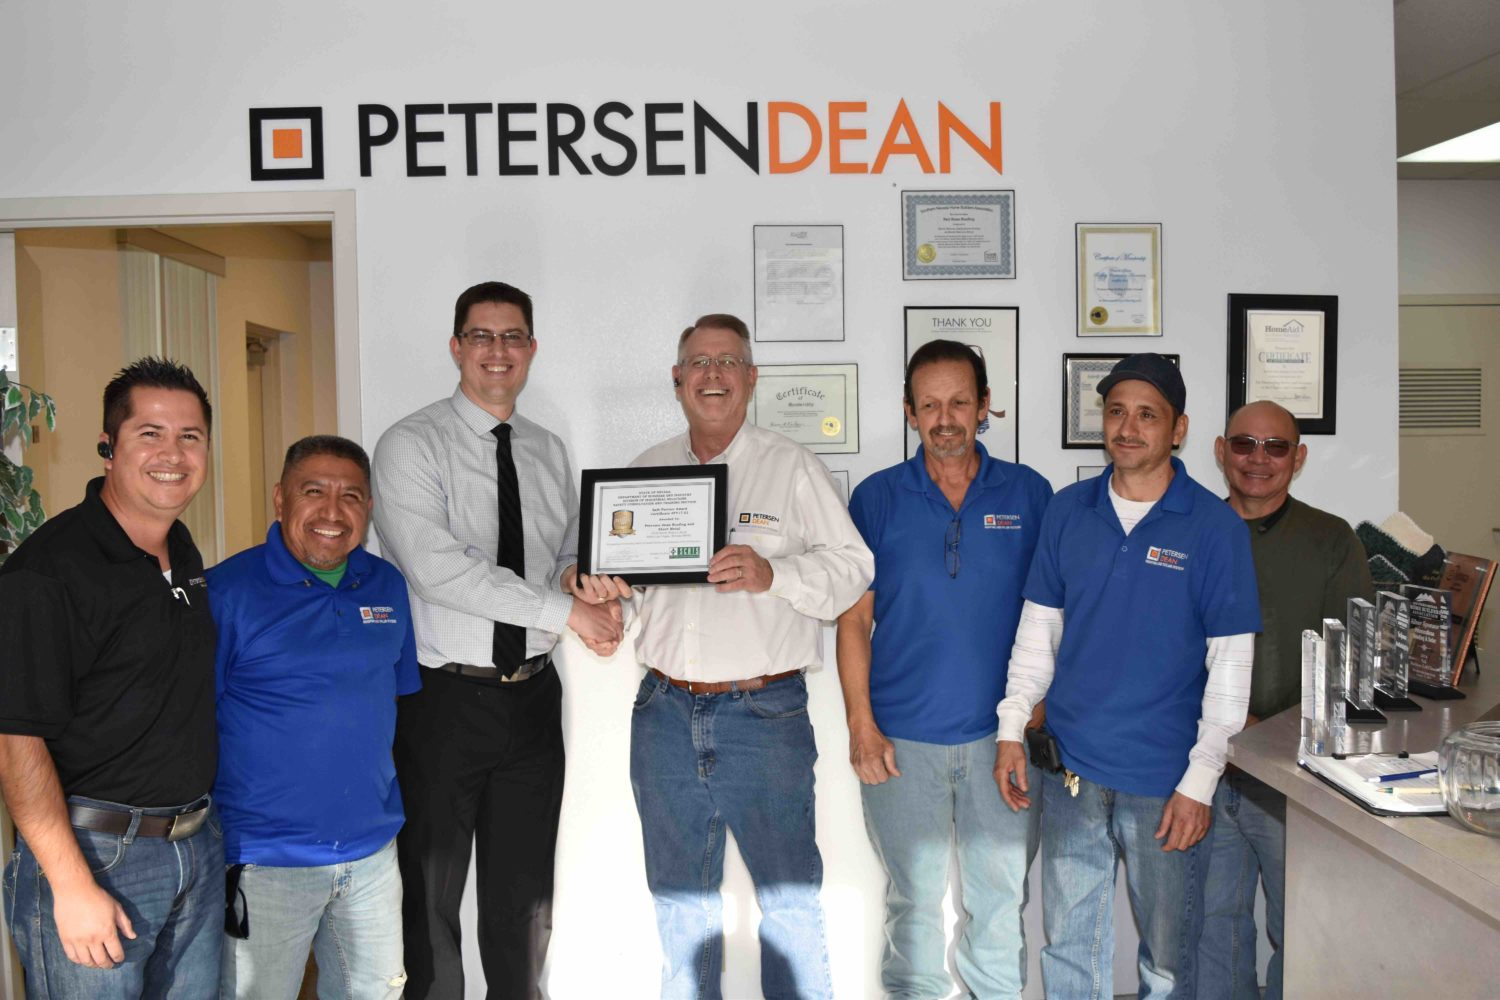 scats awards petersendean roofing and solar safe partner award